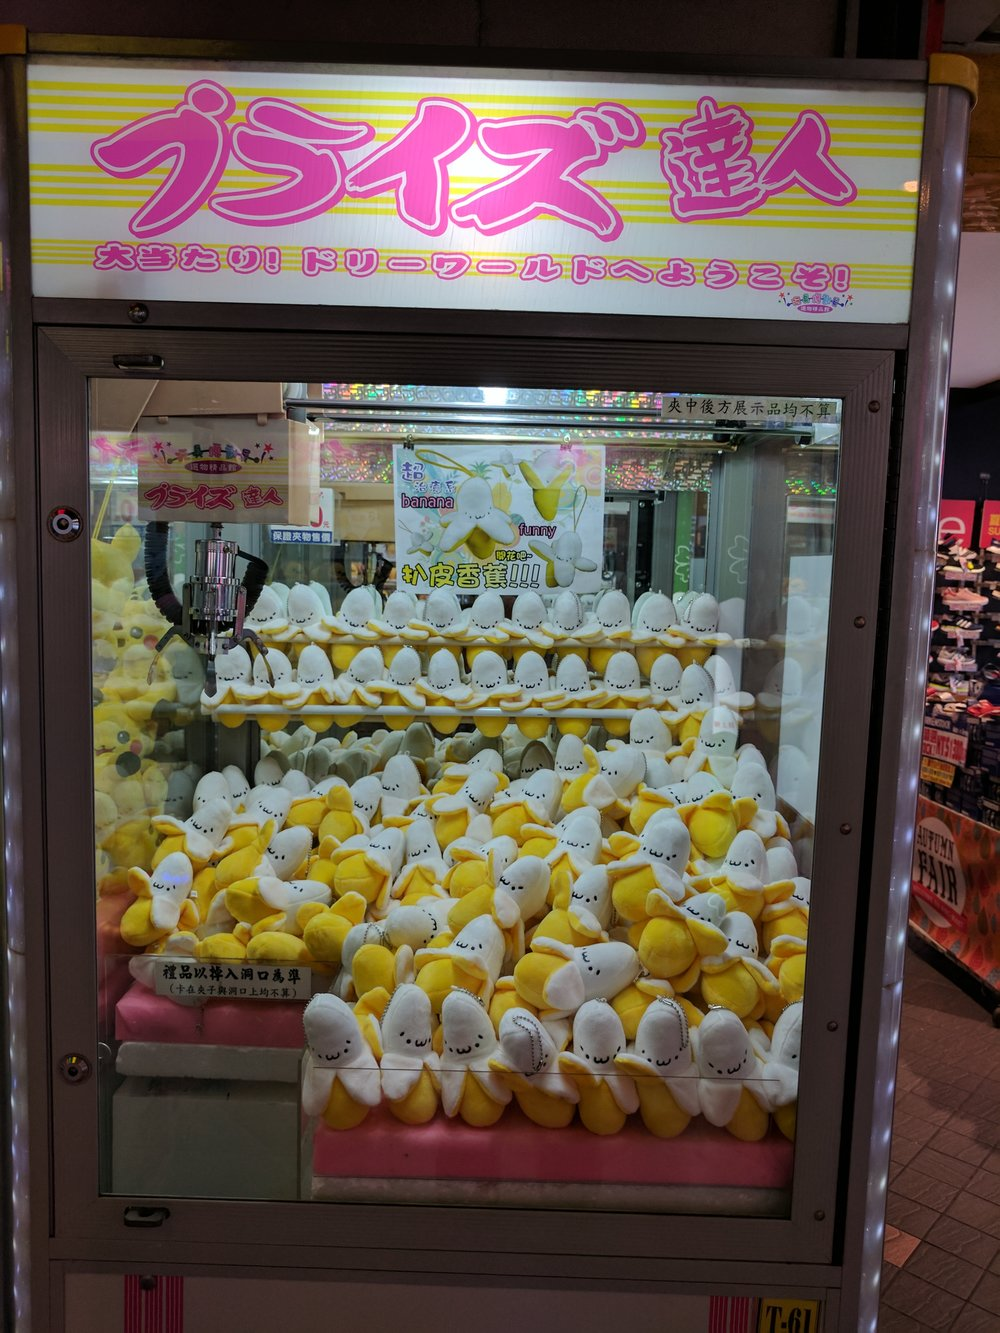 one of those claw/vending machine type games filled with stuffed bananas! i don't know why but i really really want one.